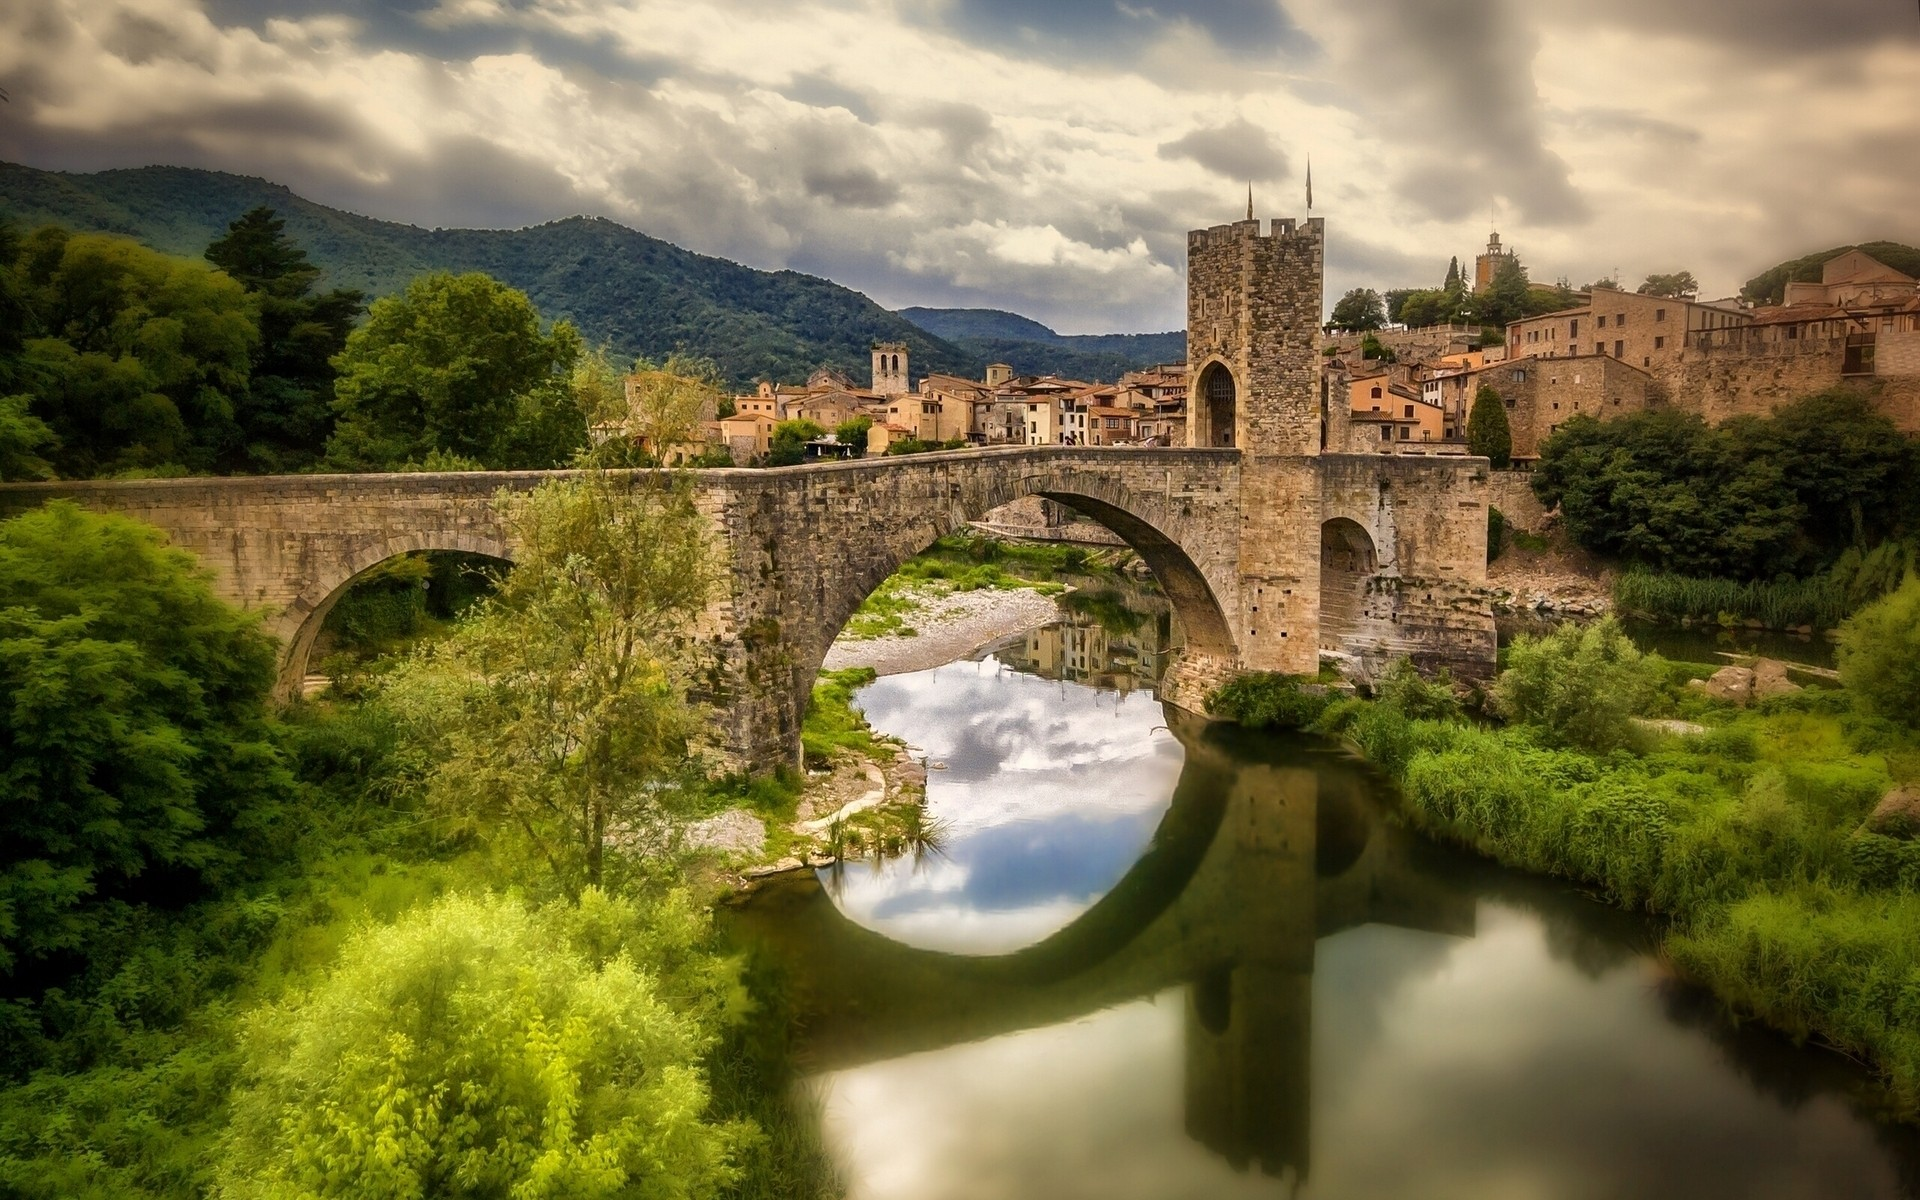 spain architecture travel bridge castle river water gothic ancient old landscape sky outdoors building city tree stone tower besalu bridge catalonia